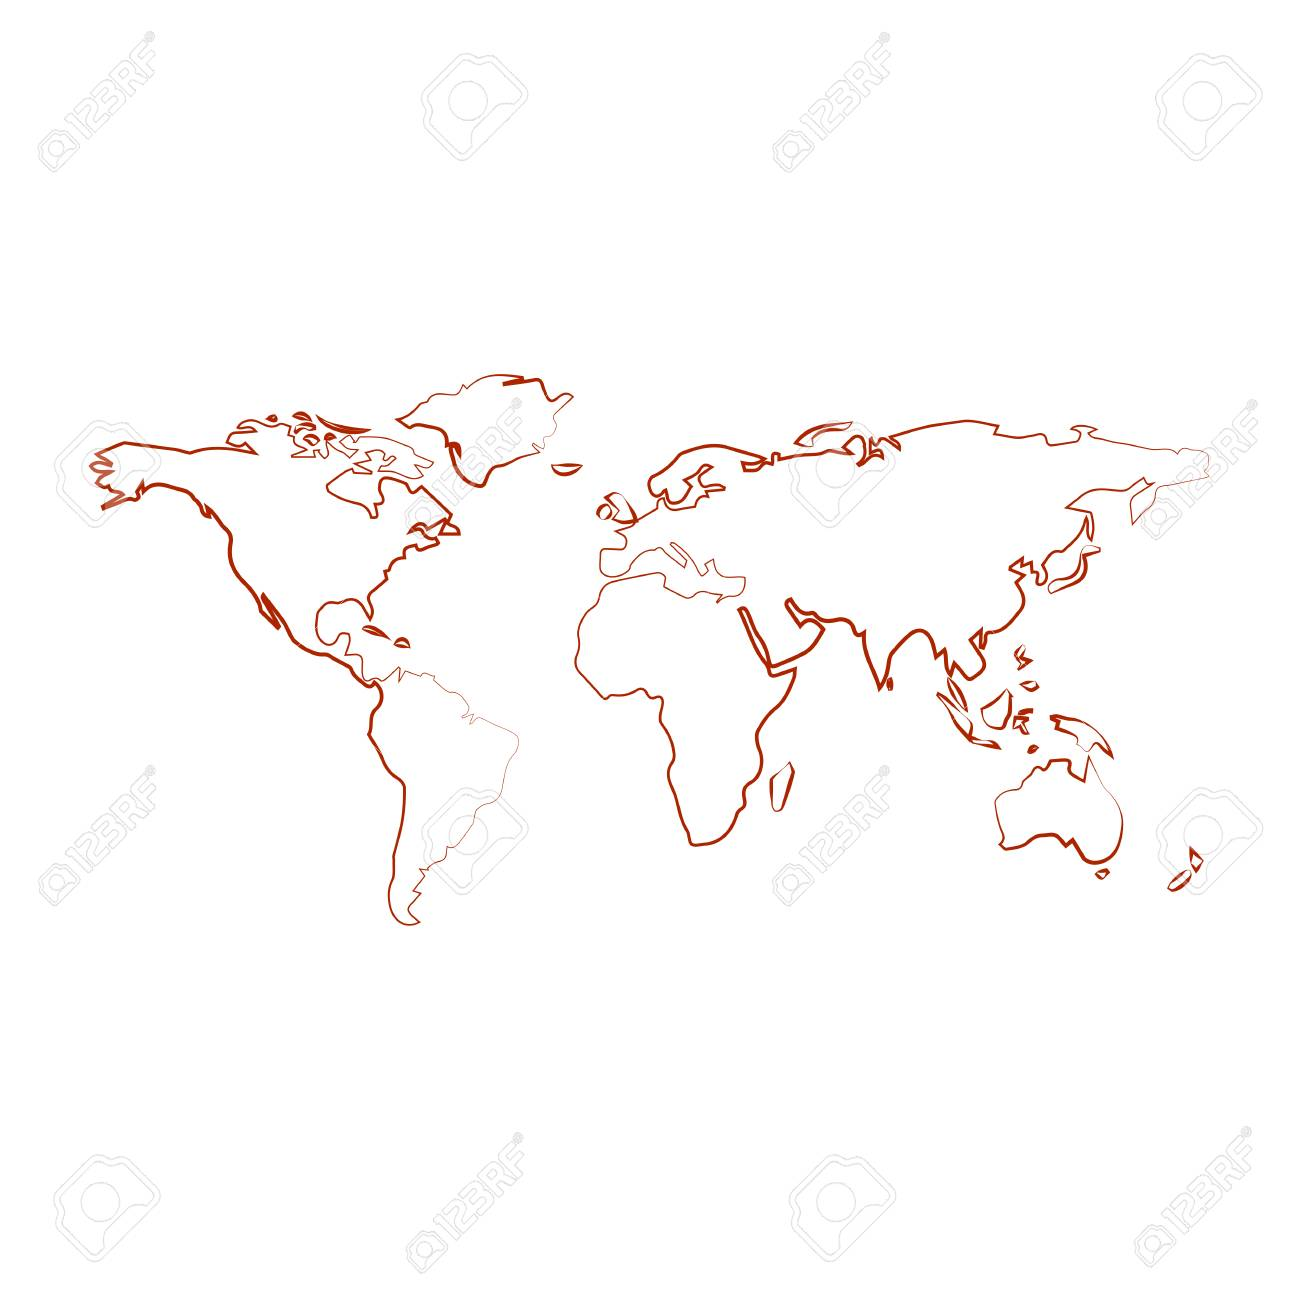 World map with country borders outline on white background royalty vector world map with country borders outline on white background gumiabroncs Gallery